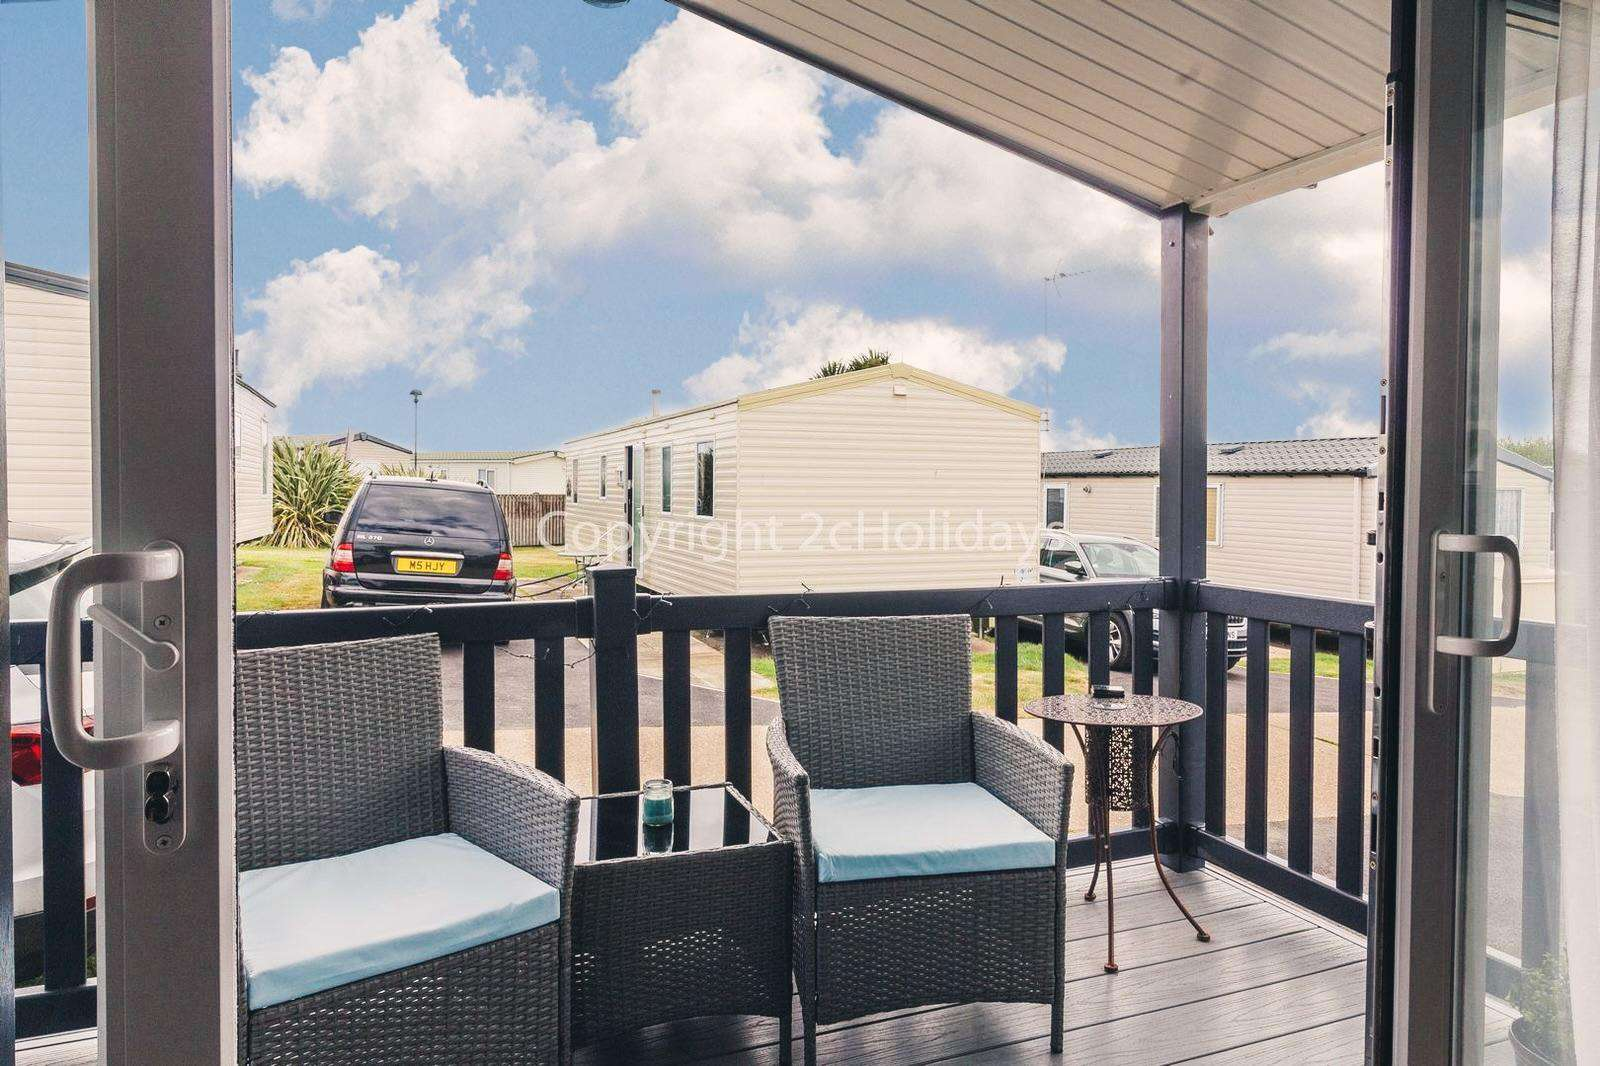 Beautiful outside, sheltered, enclosed decking with rattan furniture!